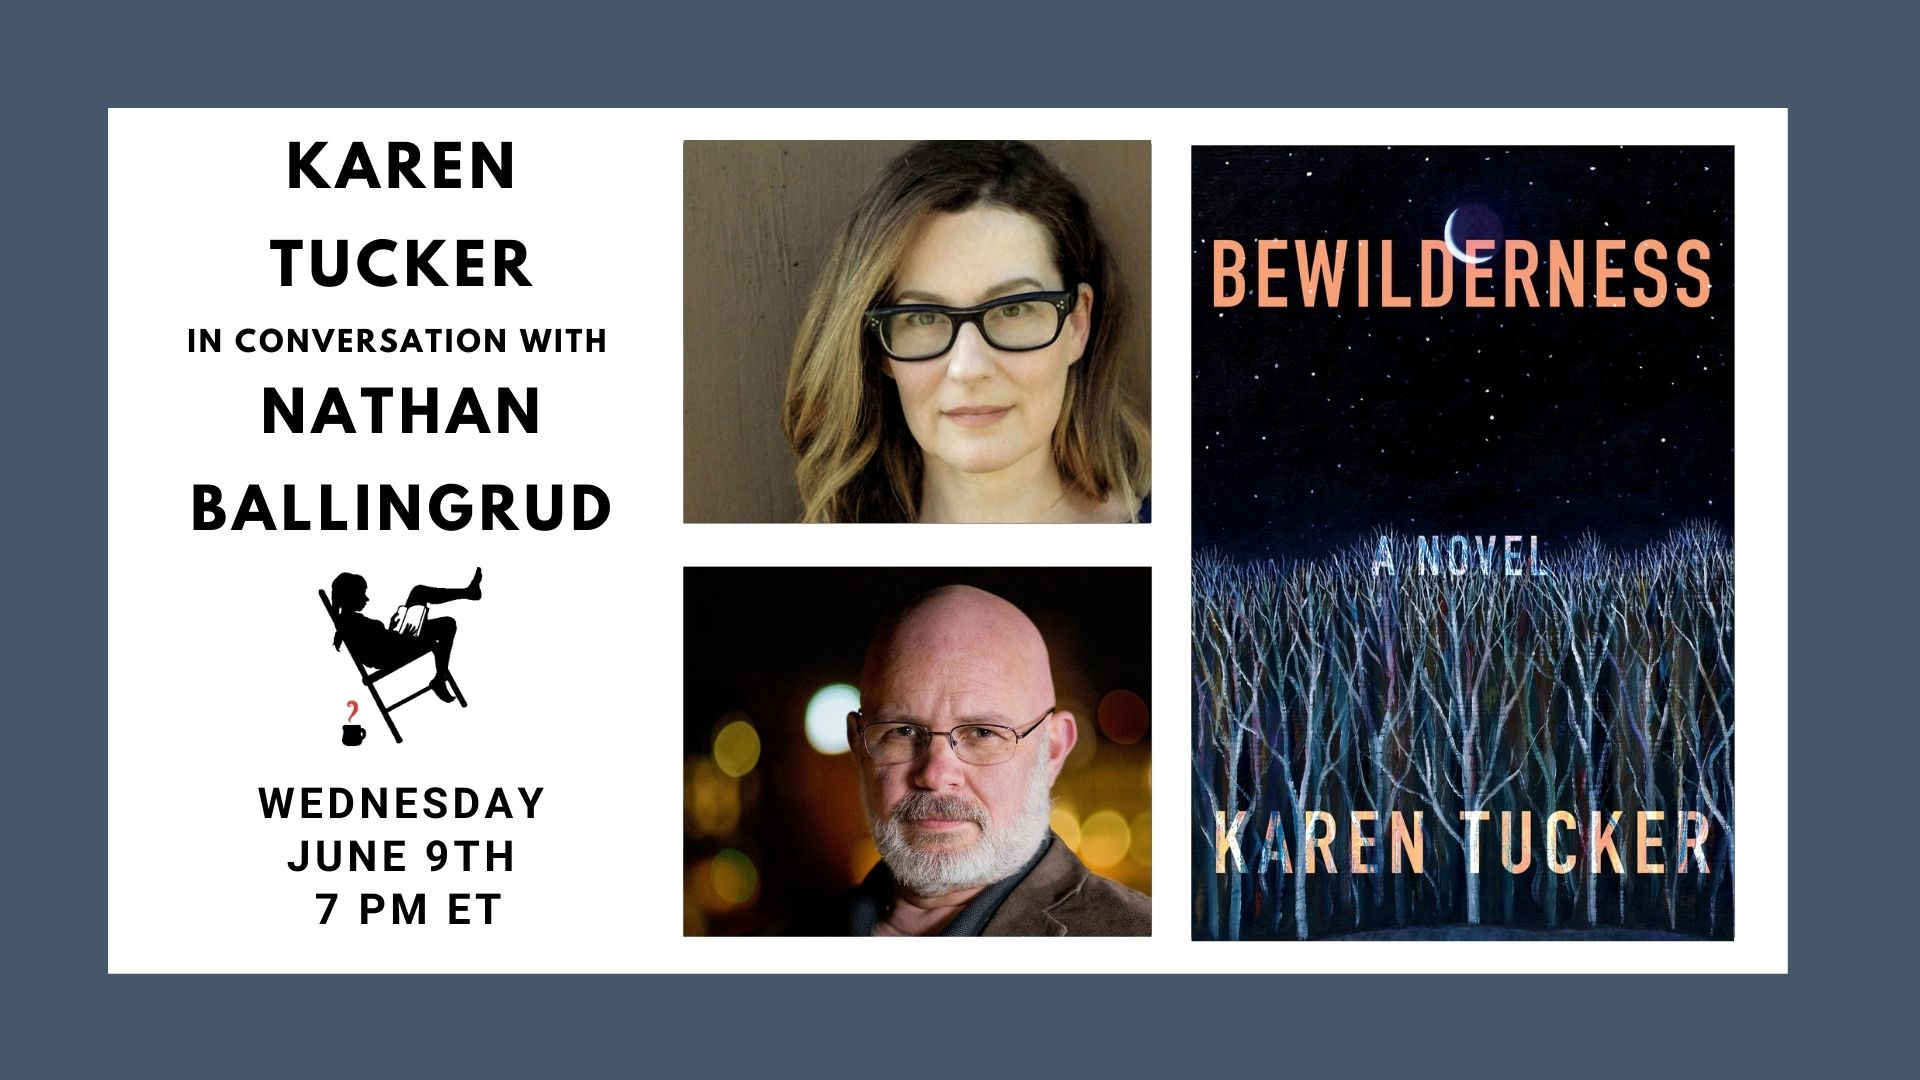 Image shows the authors and featured book cover for event on 6/9/21 at 7pm